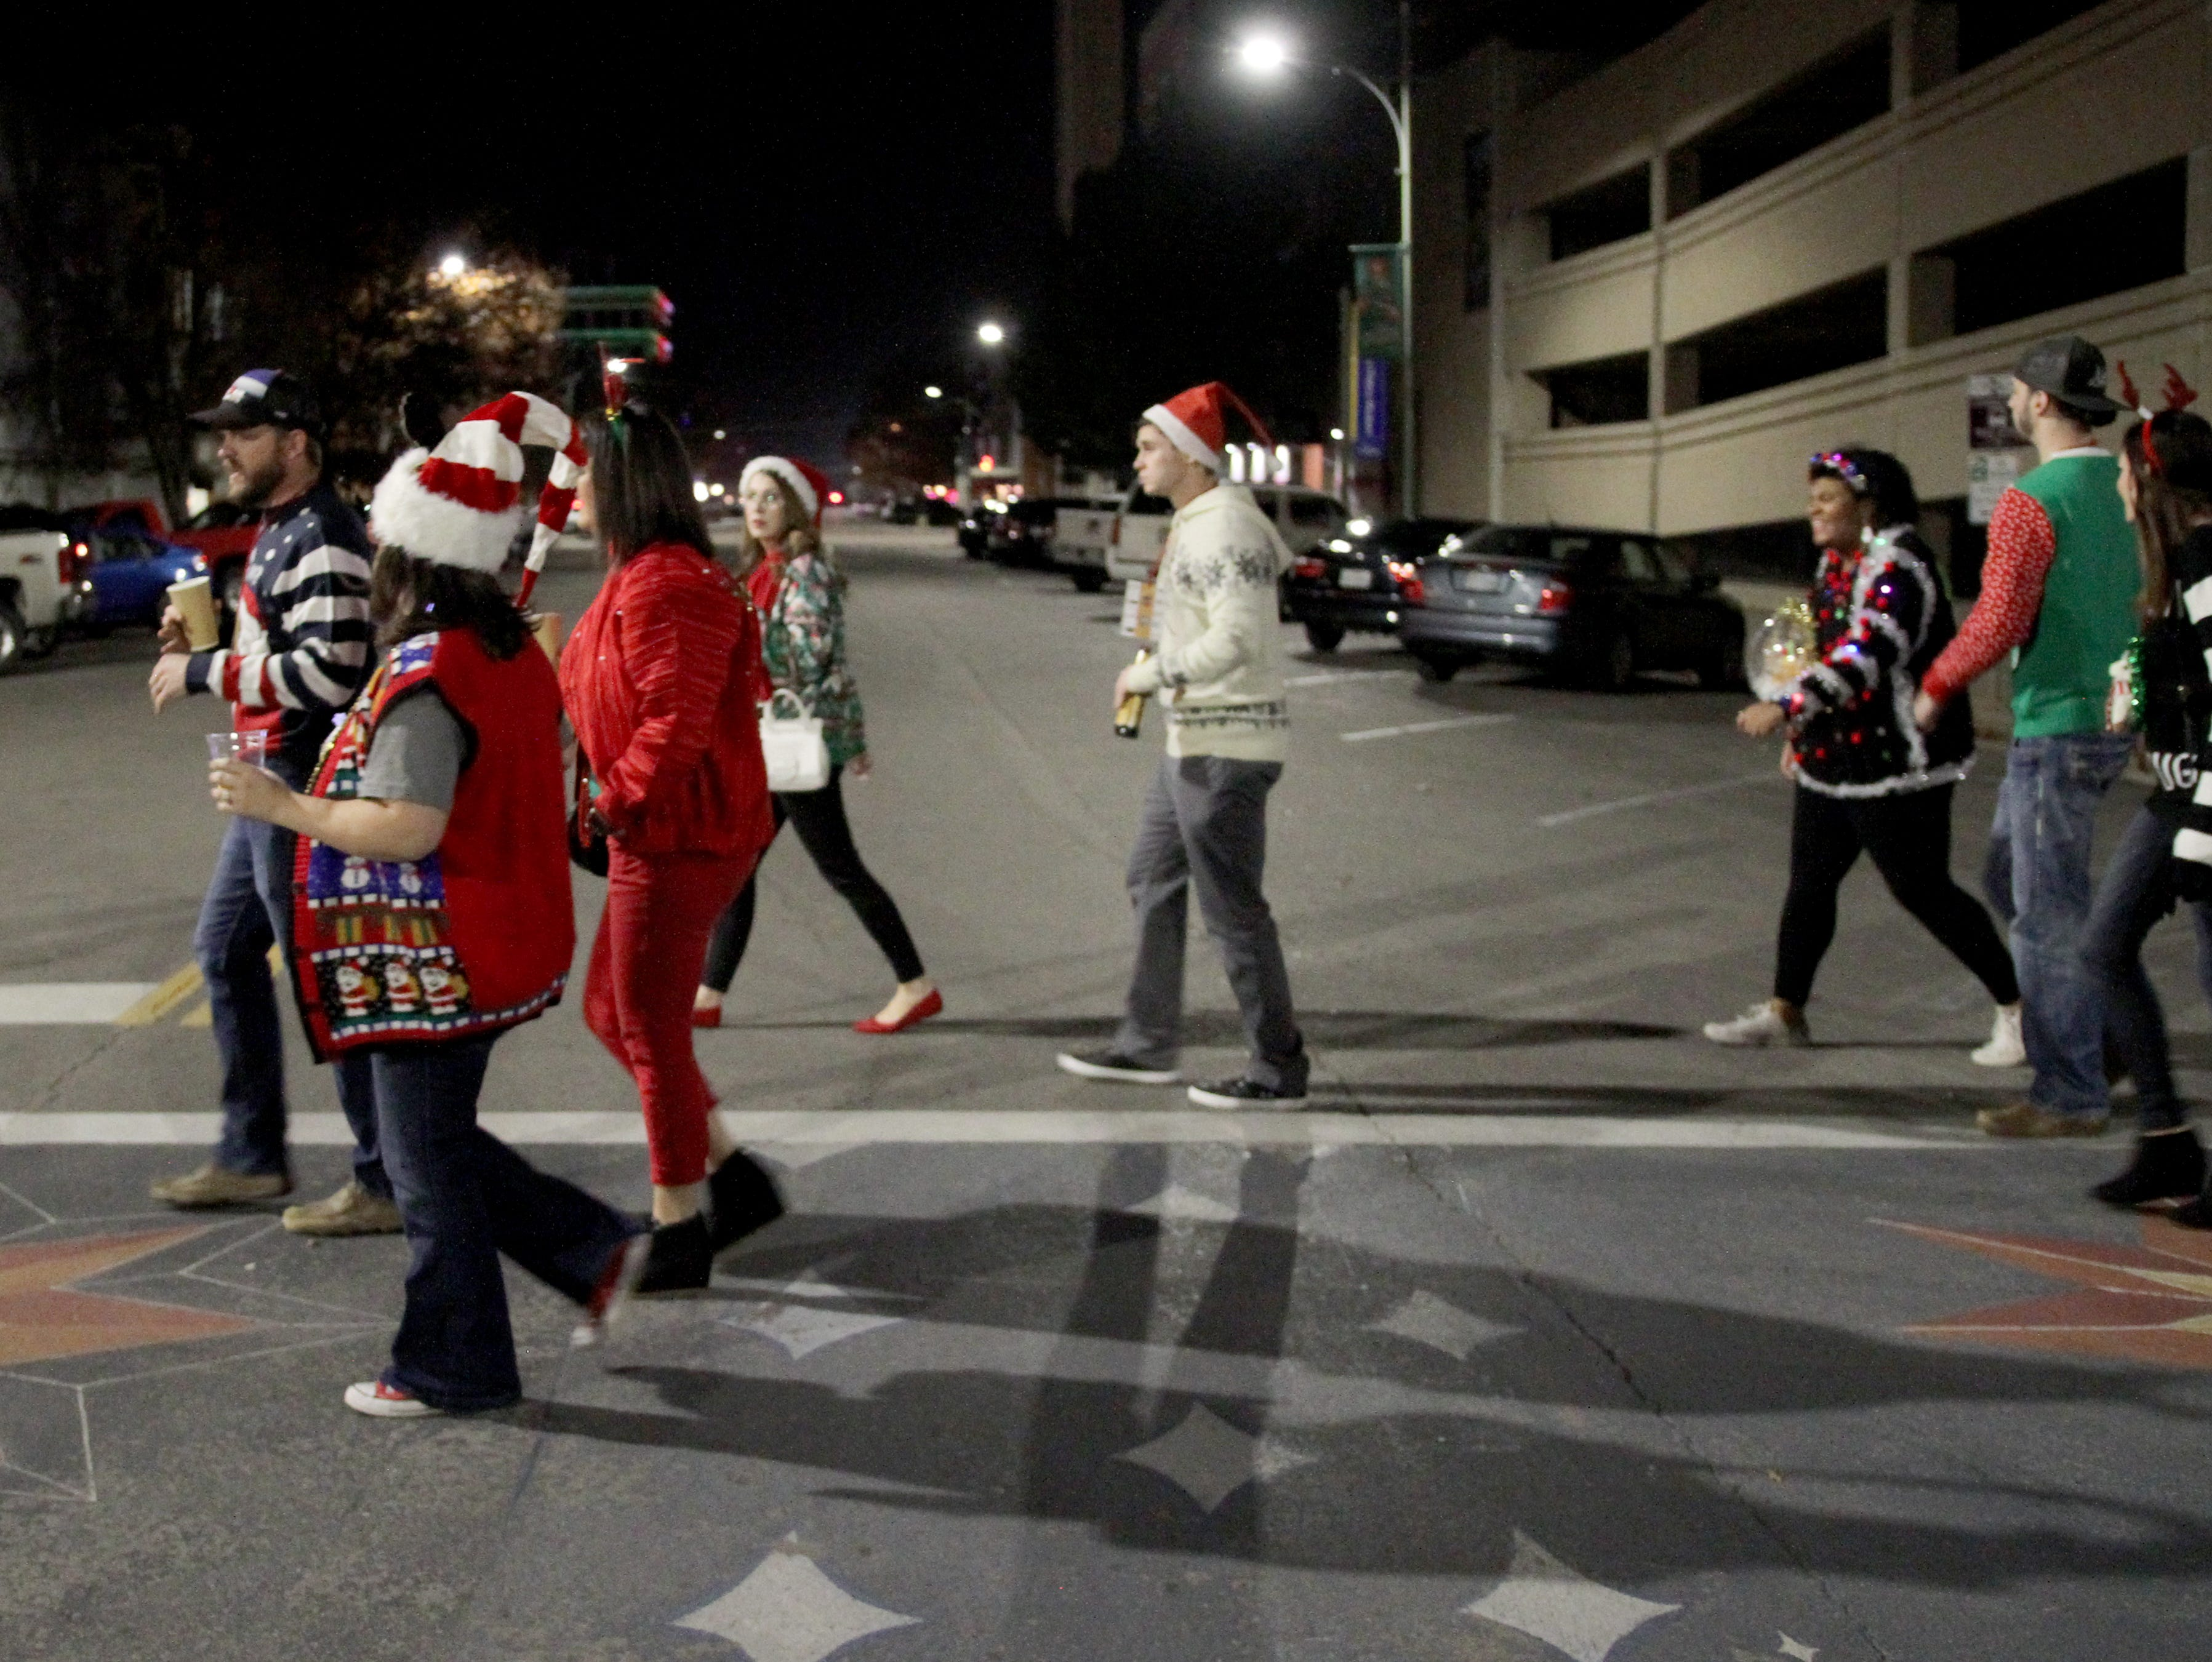 People on Rudolph's First Ugly Sweater Crawl head to their next stop at the Wichtia Falls Brewing Company Saturday, Dec. 1, 2018, in Downtown Wichita Falls.